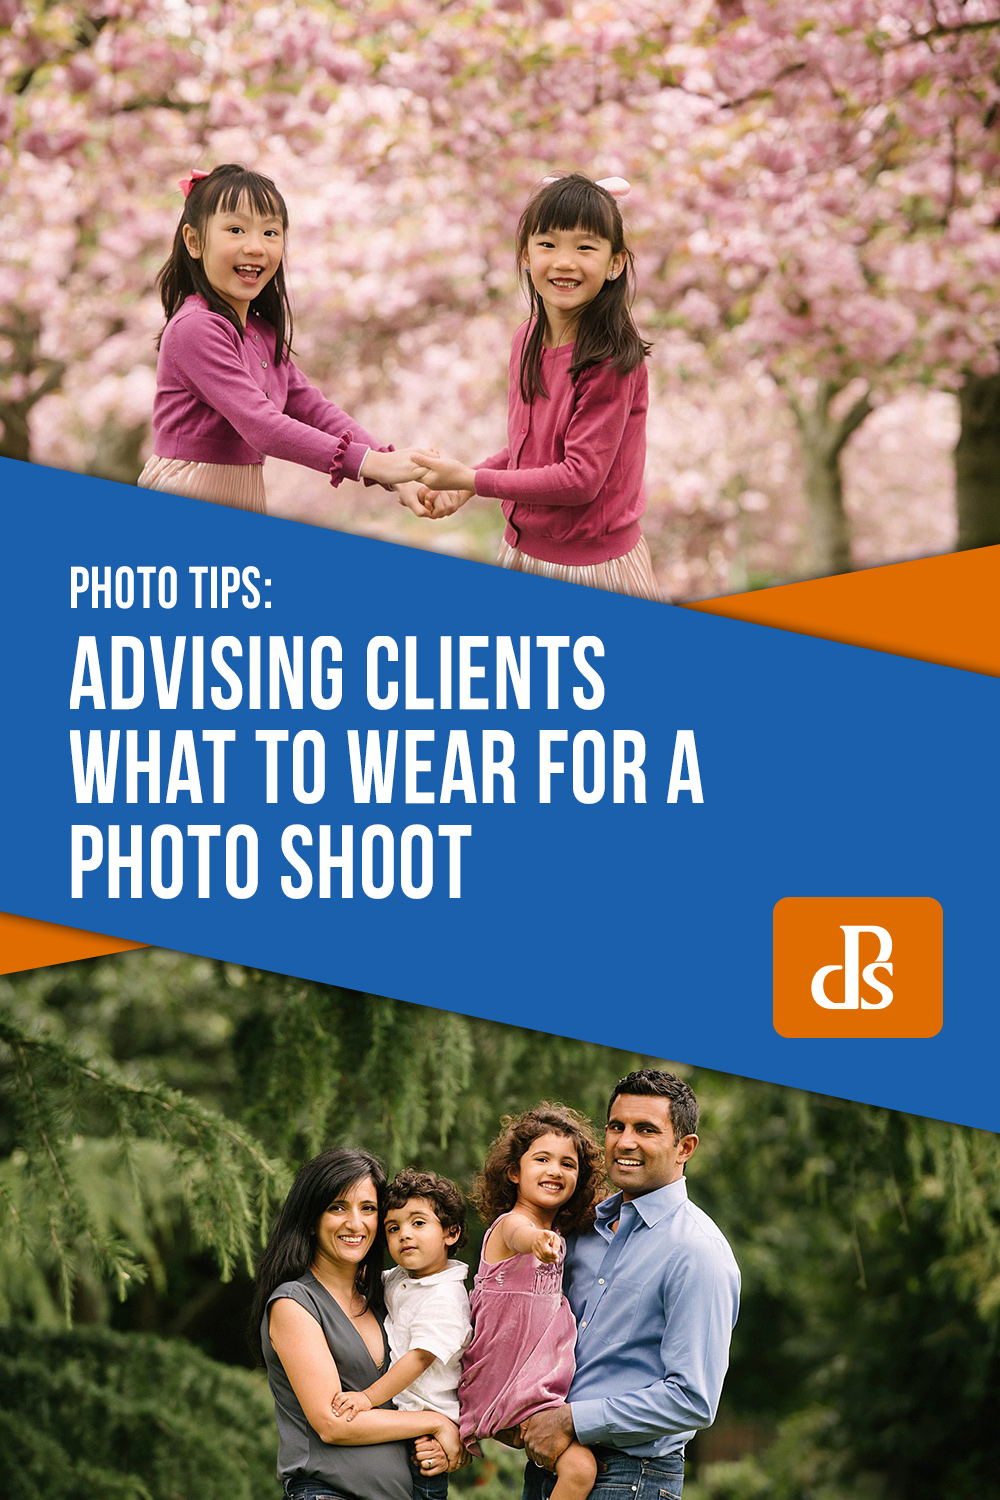 Advising Clients What to Wear for a Photo Shoot